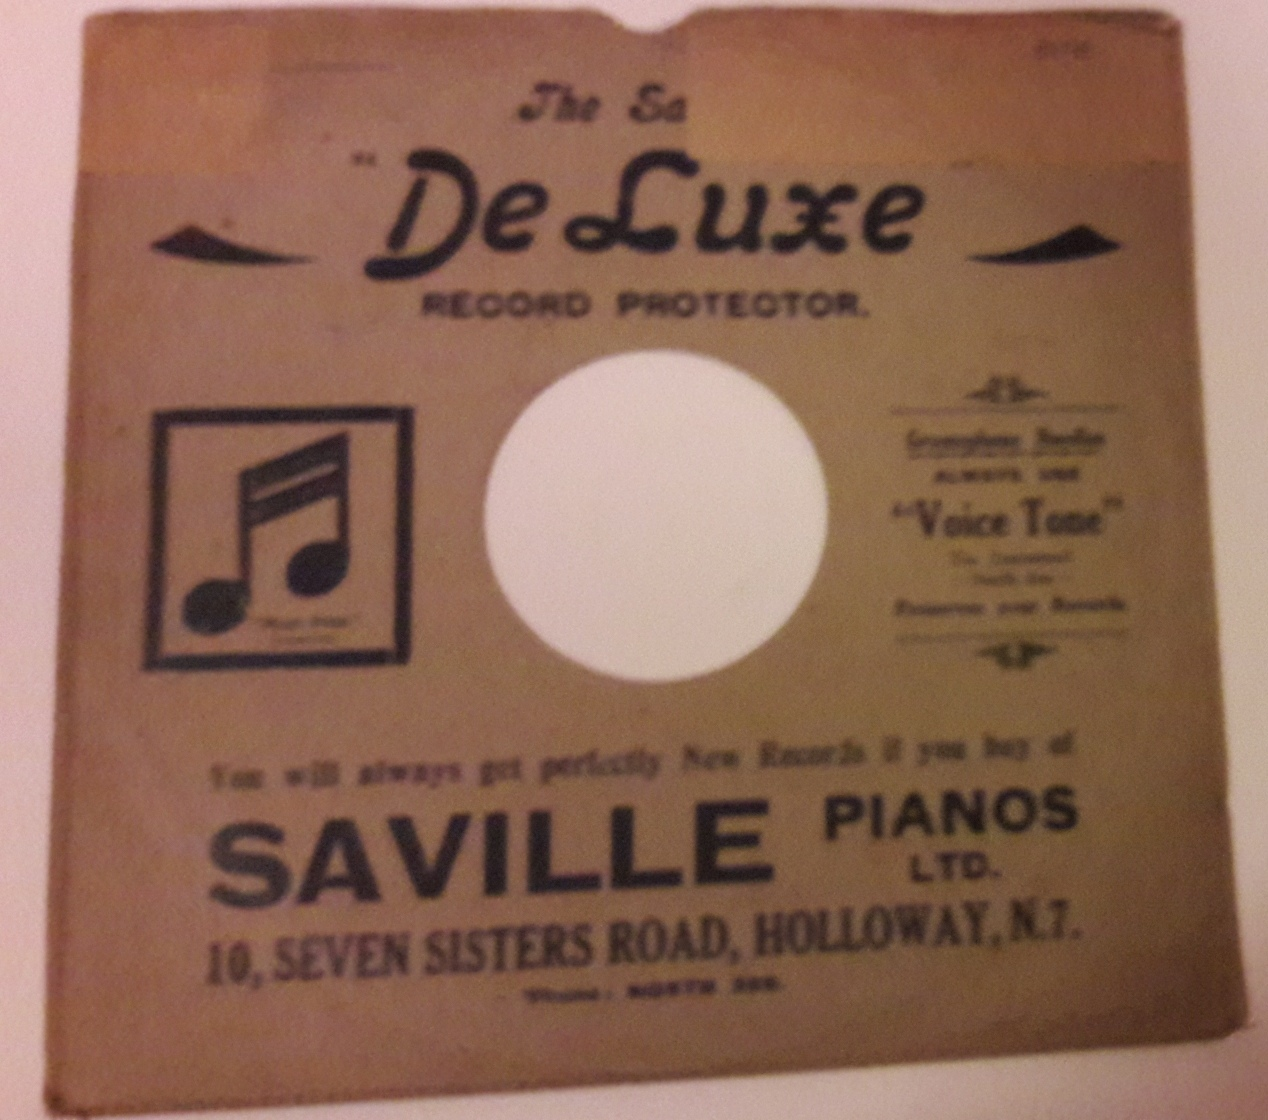 Saville Gramophone Store 10, Seven Sisters Holloway N.7 { 1 }